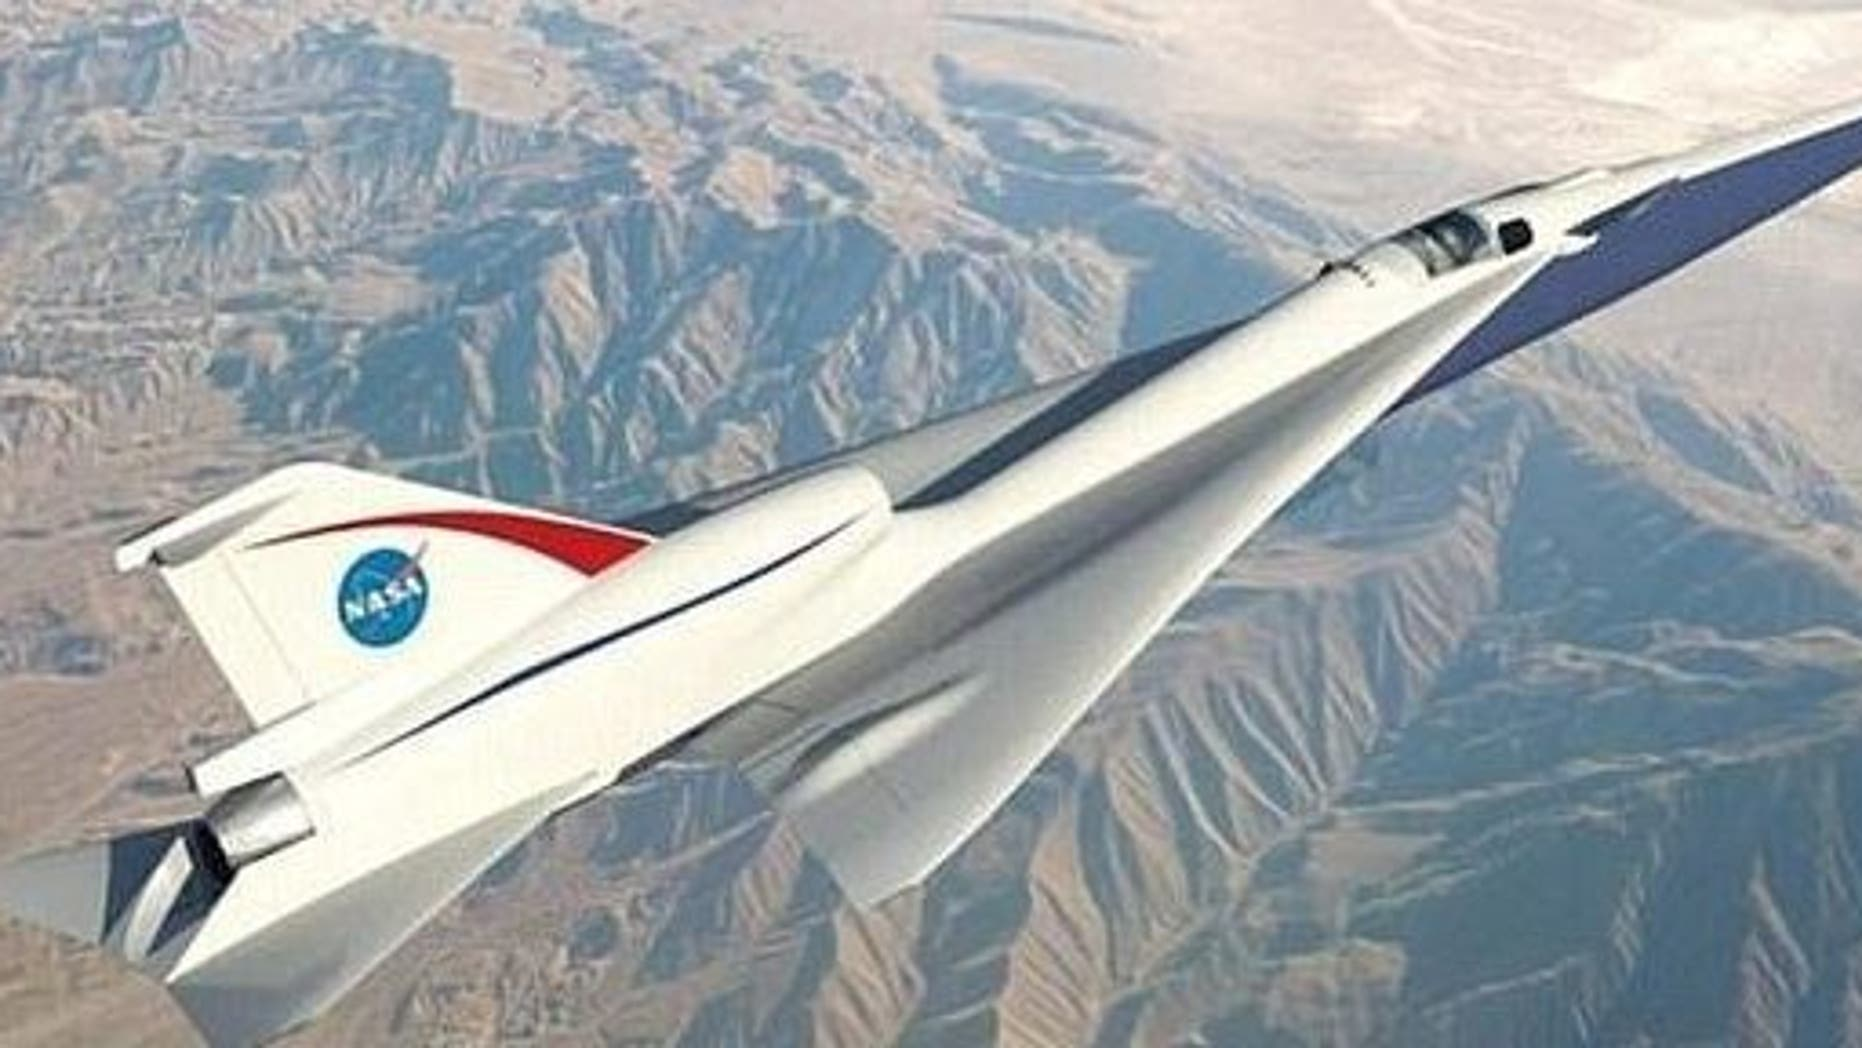 The X-59 could one day fly from London to New York in just three hours